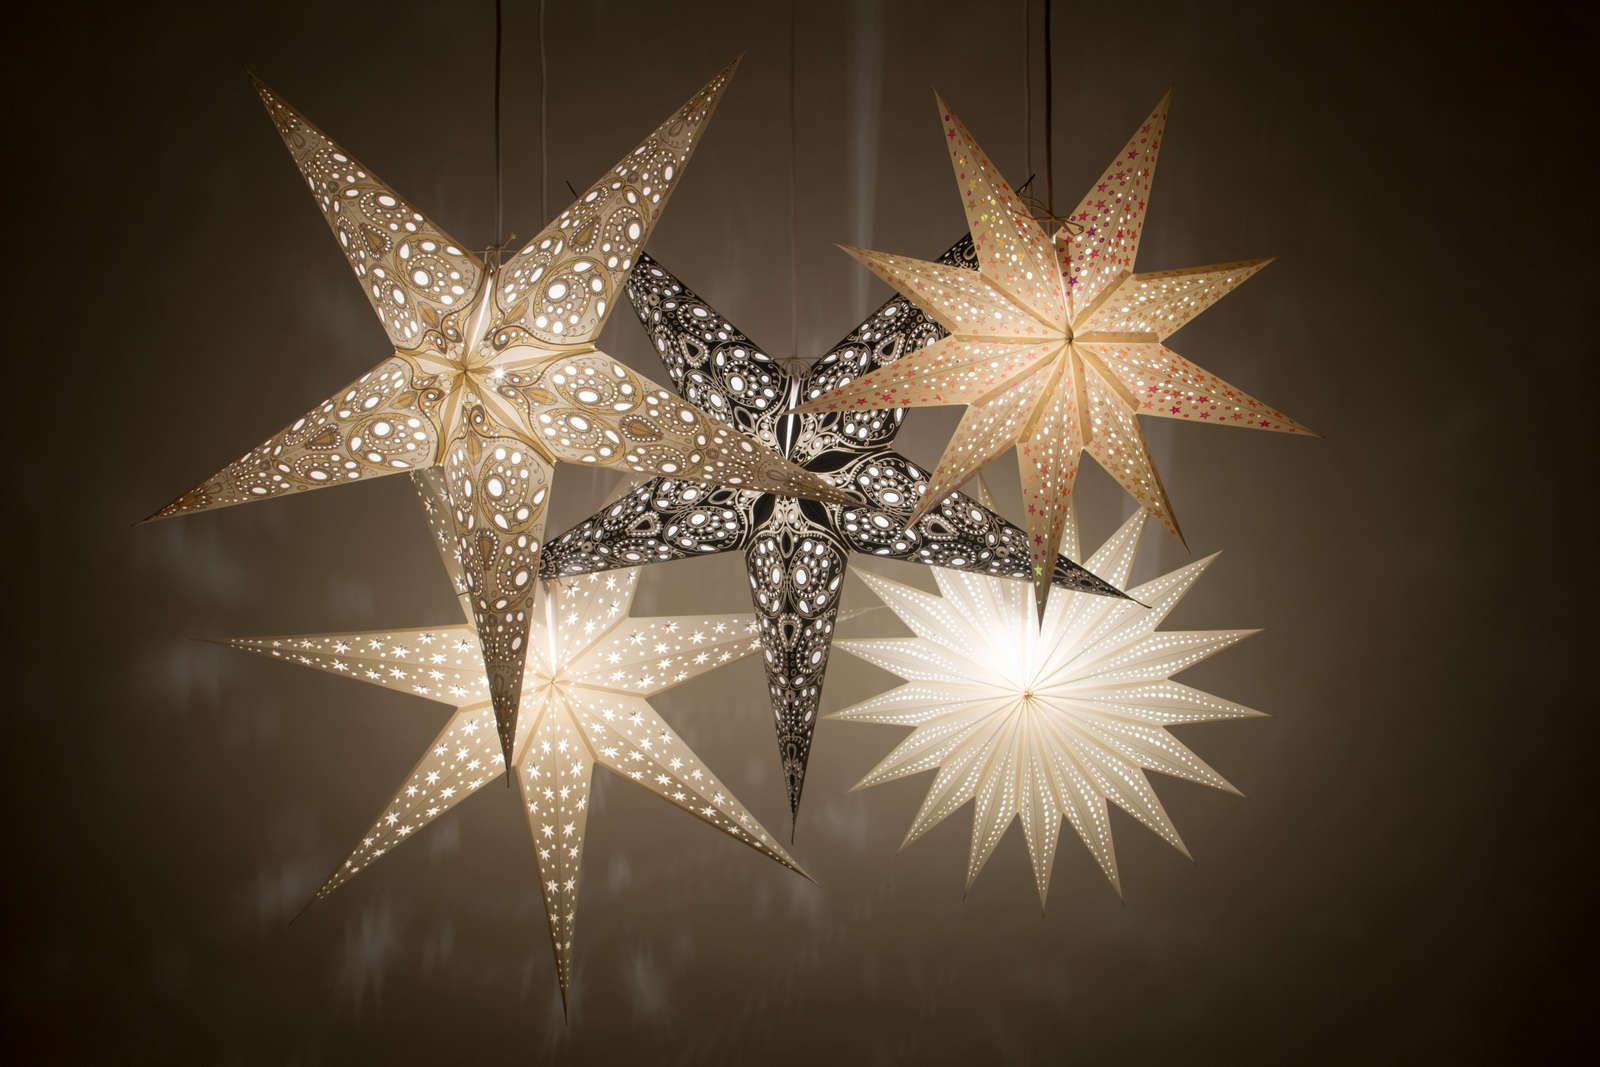 Christmas Star Lights Deluxe Paper Star Light Shades Hanging Ceiling Lampshades